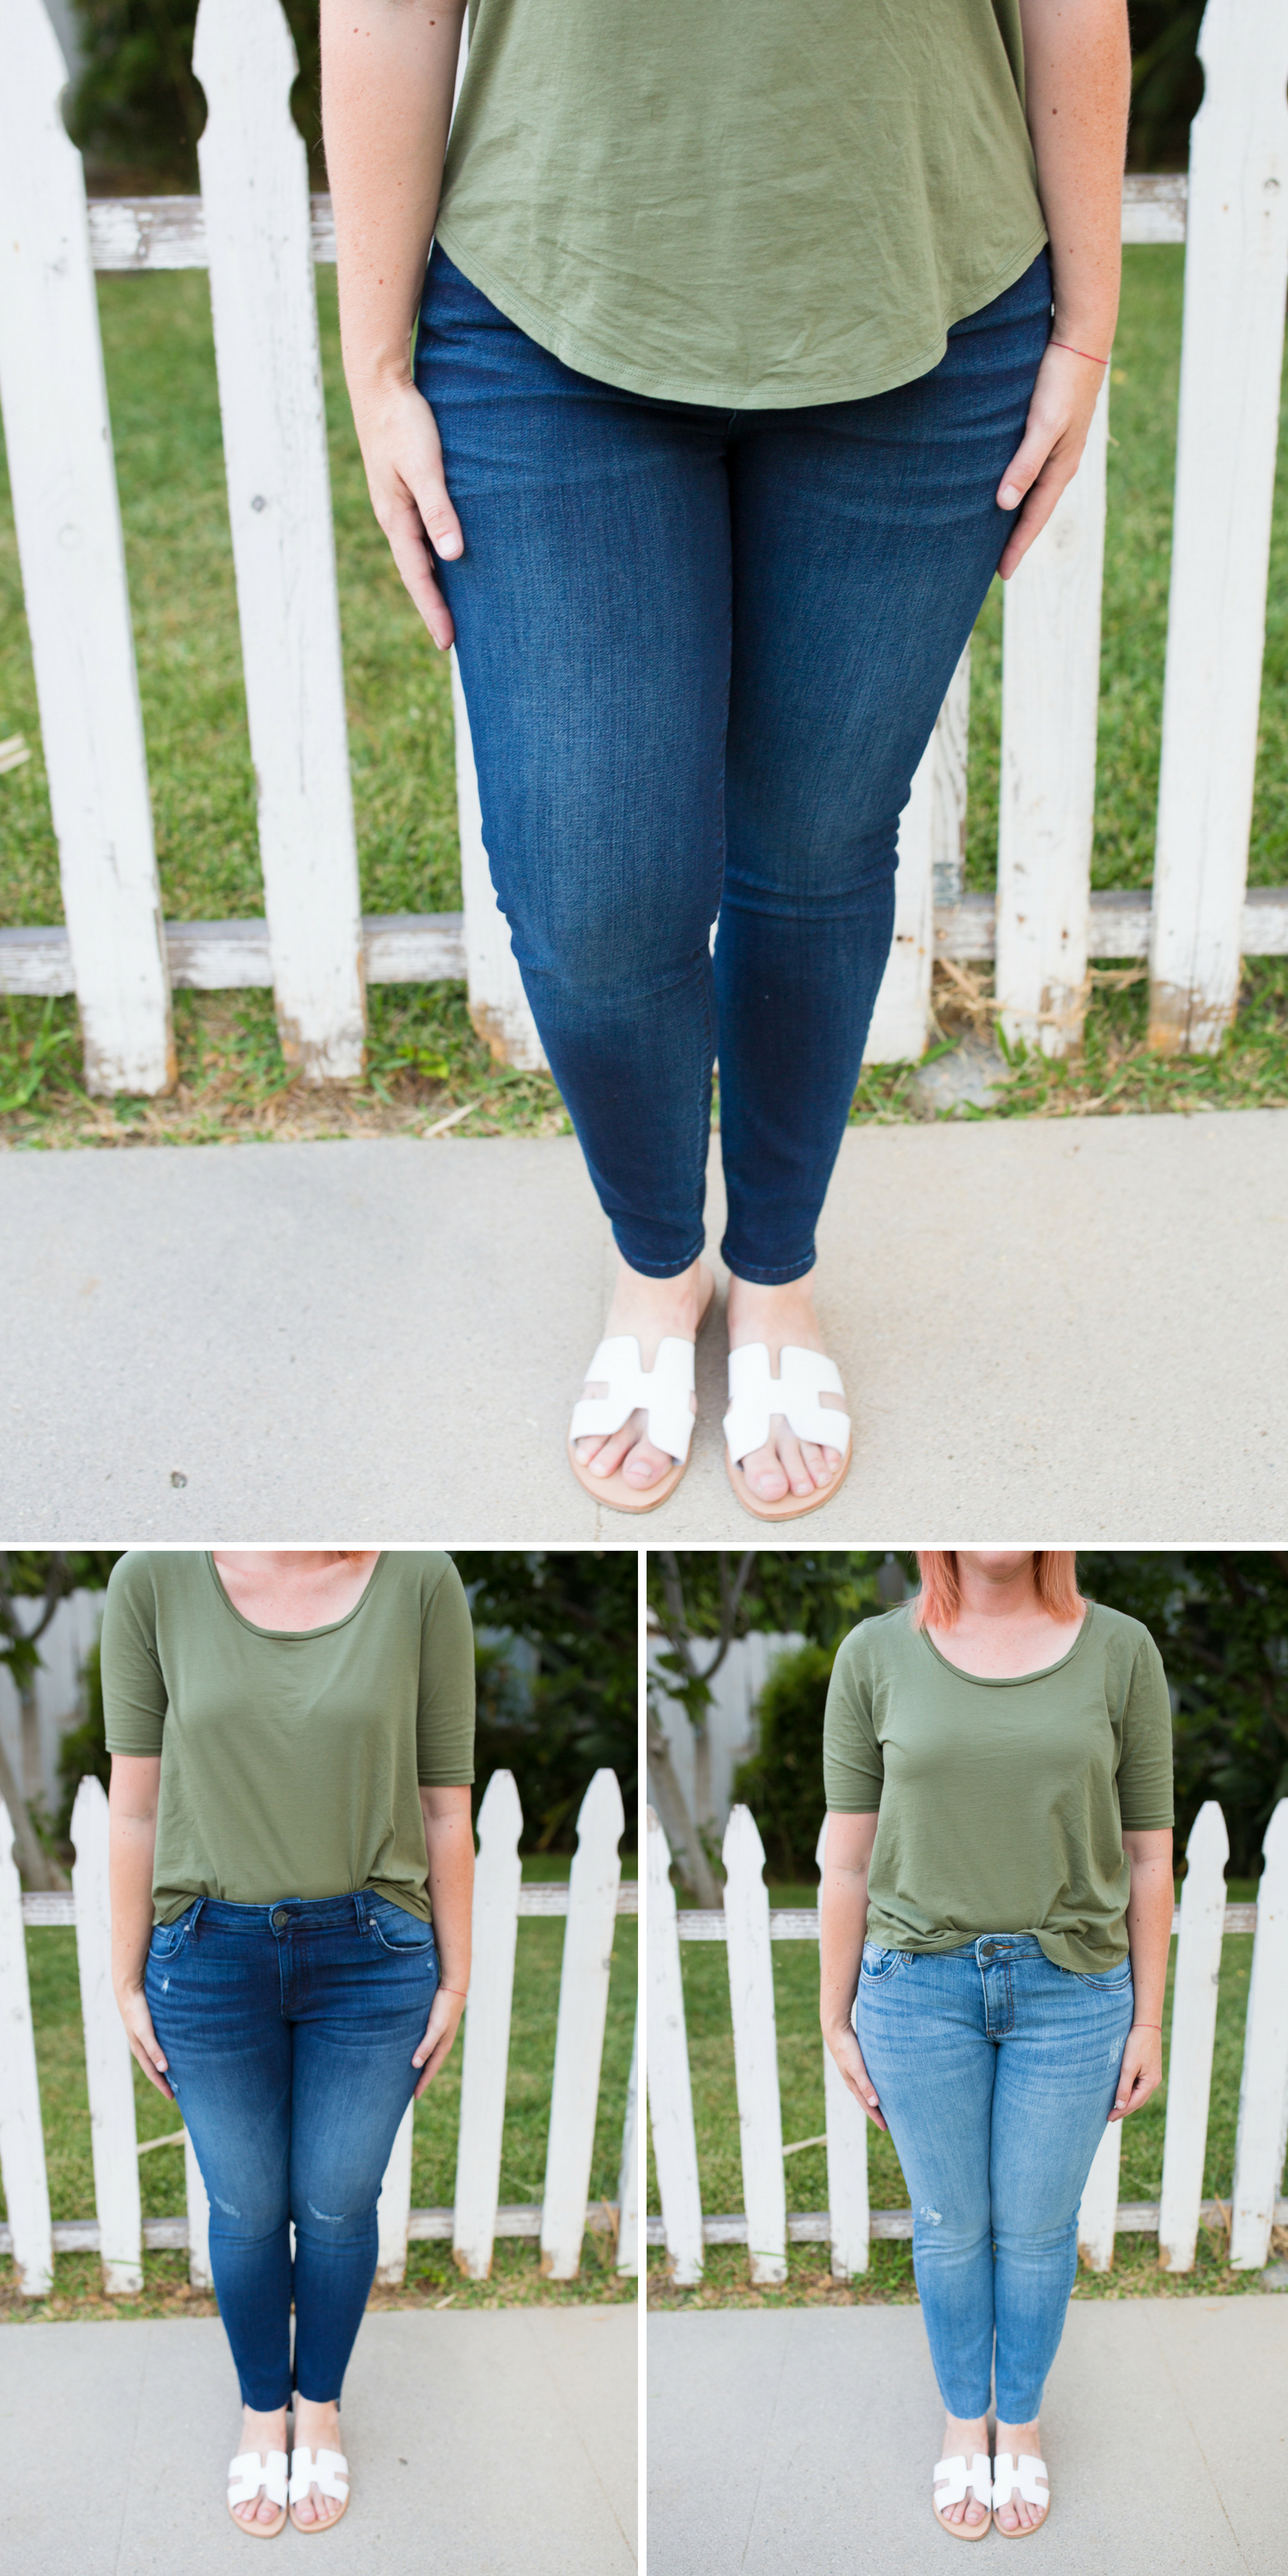 Want to know what to buy from the Nordstrom Anniversary Sale 2018? These are the top jeans to buy, compared in pictures and by pricing!